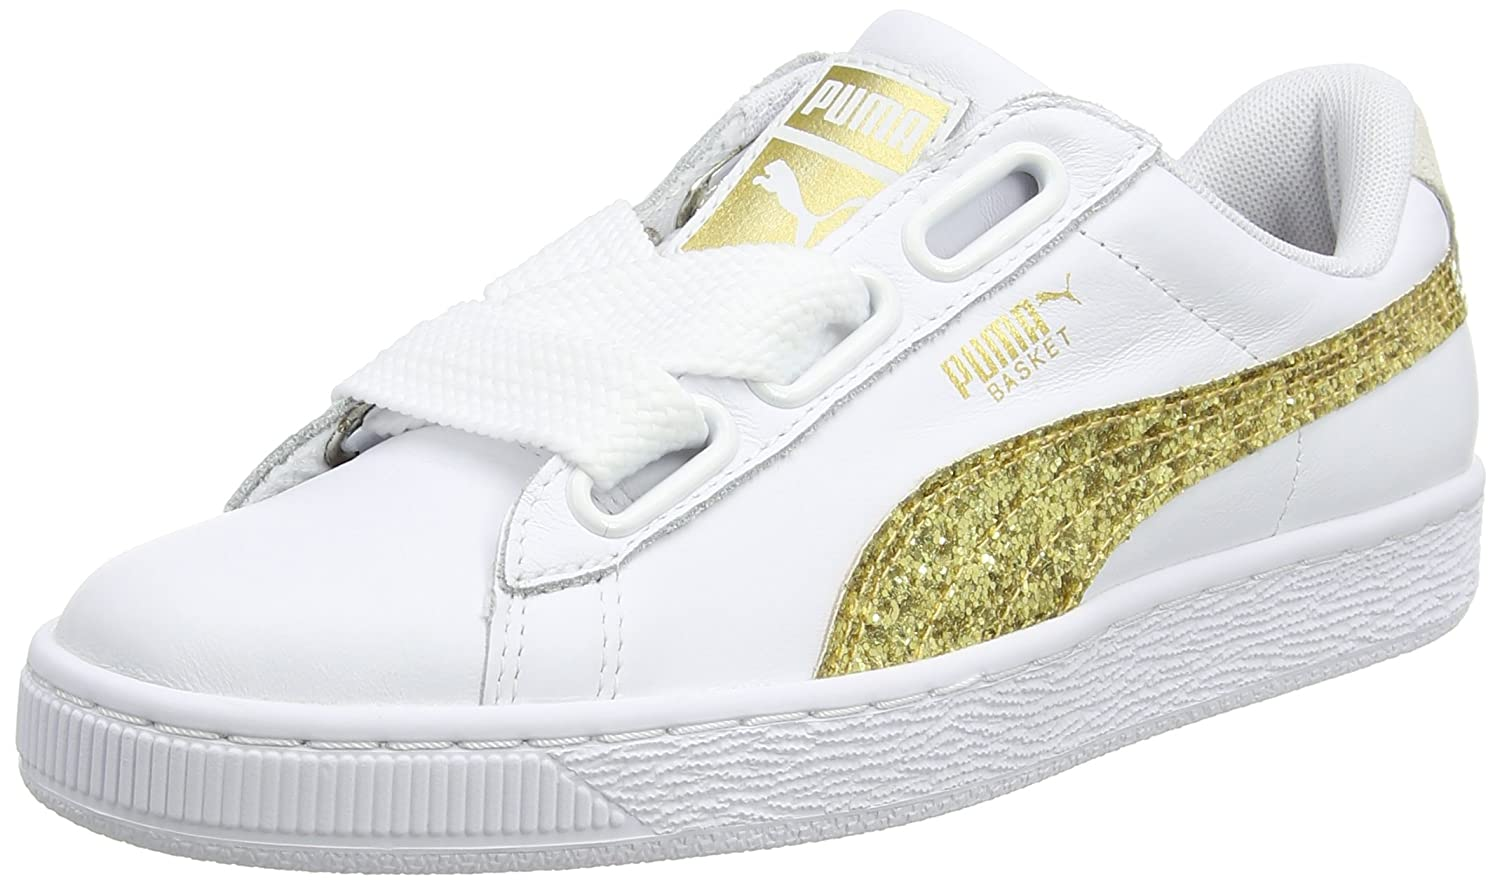 0a7035009fc83 Puma Women s Basket Heart Glitter Wn S Sneakers  Buy Online at Low Prices  in India - Amazon.in